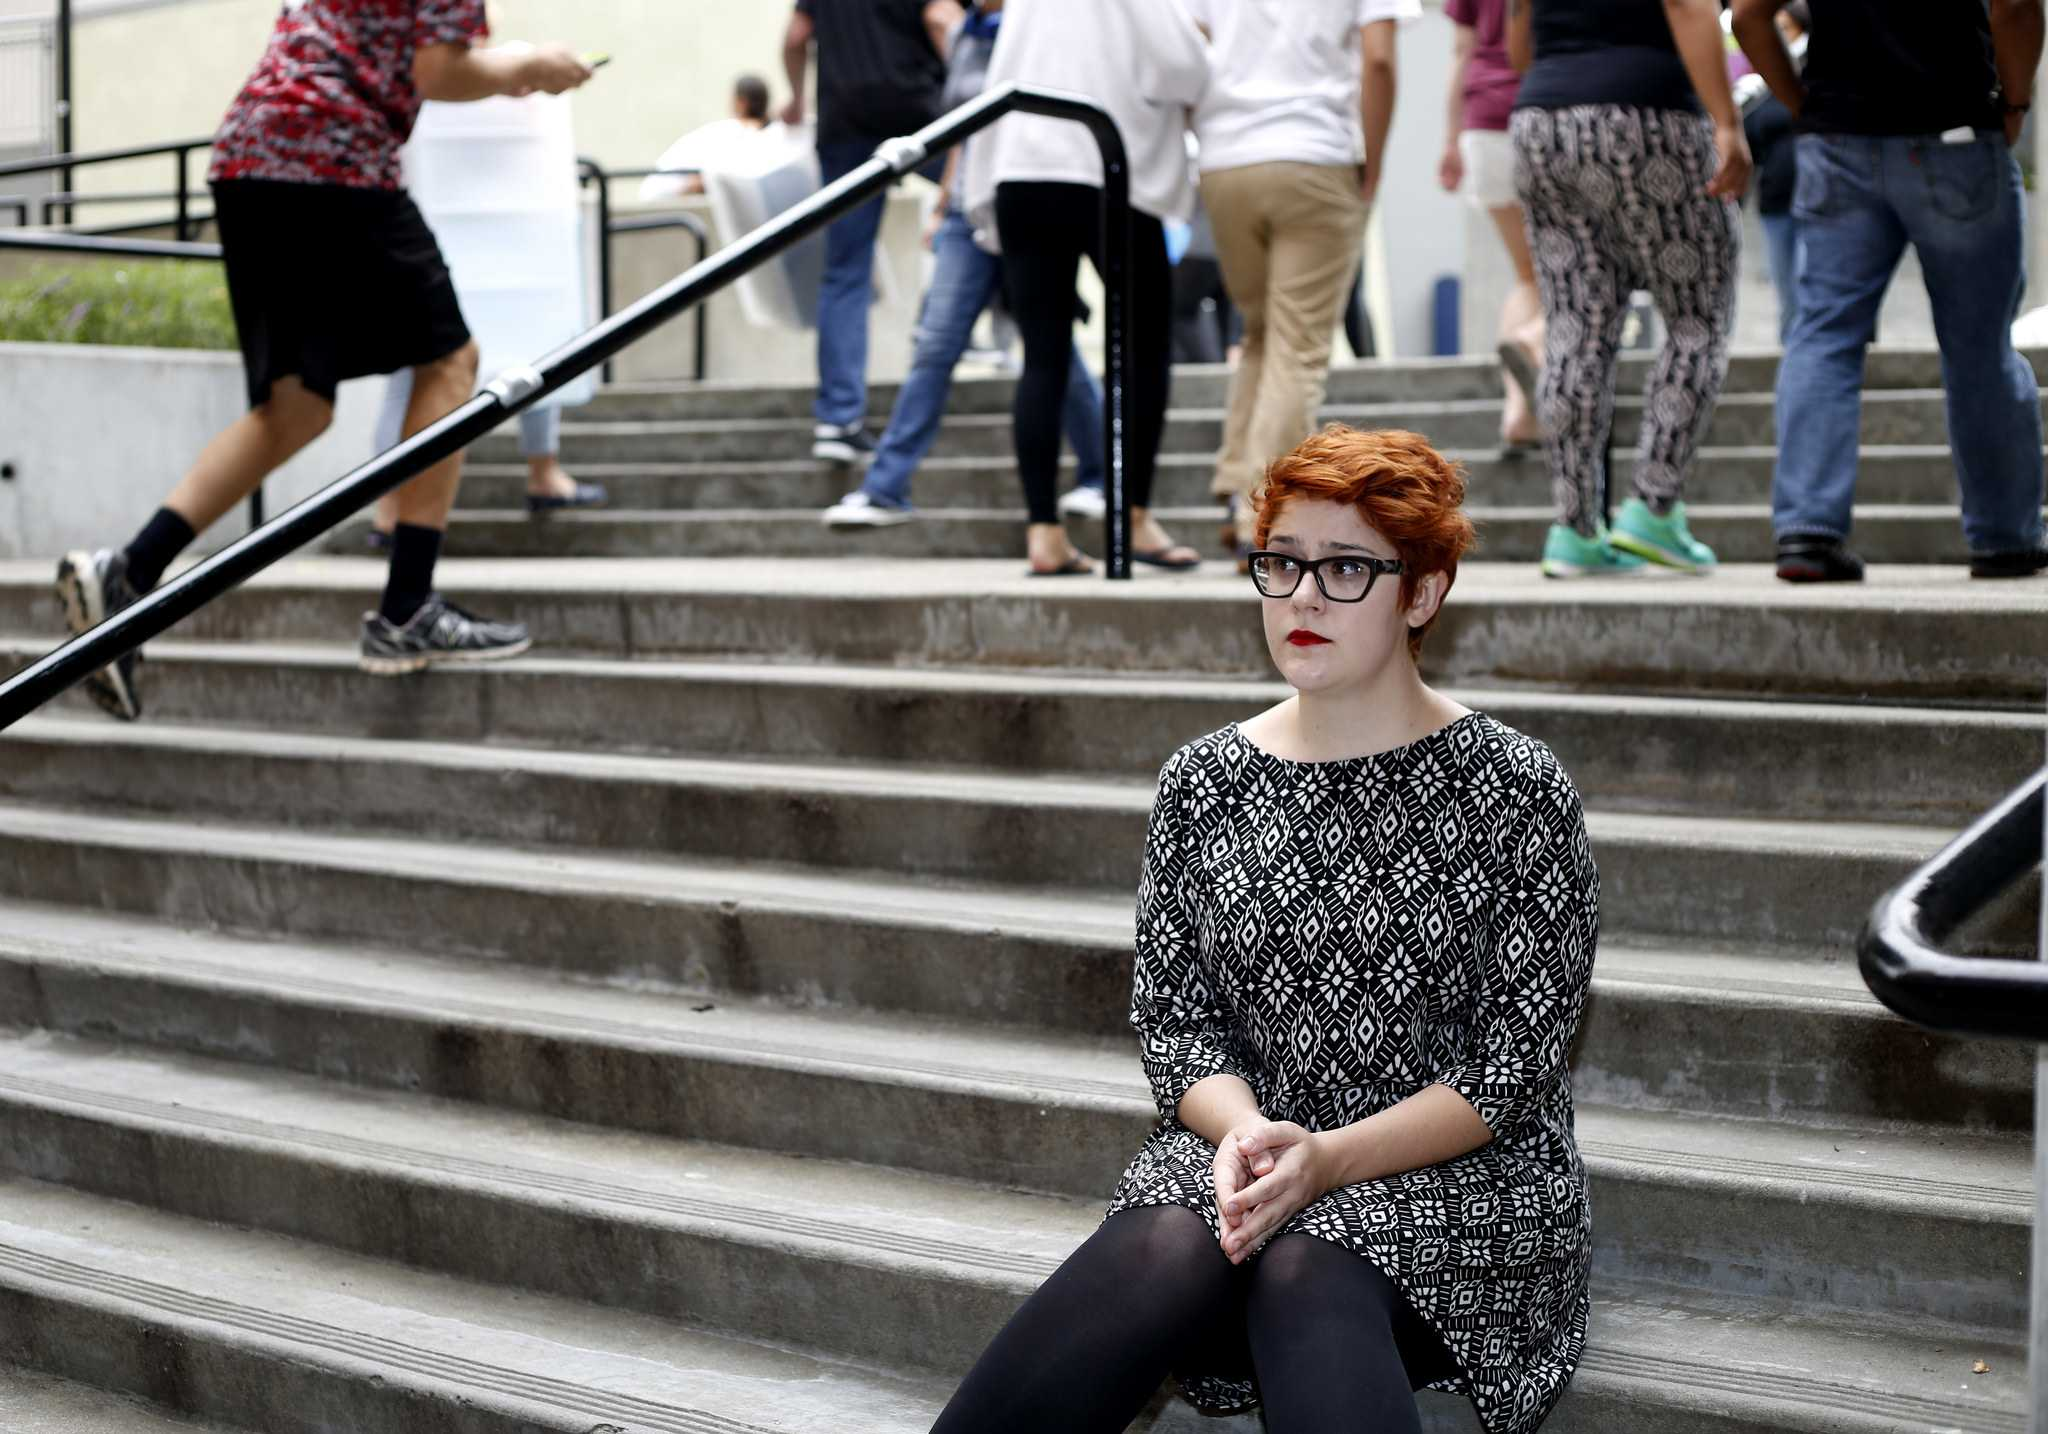 Darcy Fracolli, senior and managing editor of the Golden Gate Xpress poses for a portrait in front of the Towers at Centennial Square at SF State Thursday Aug. 20. (Emma Chiang / Xpress)